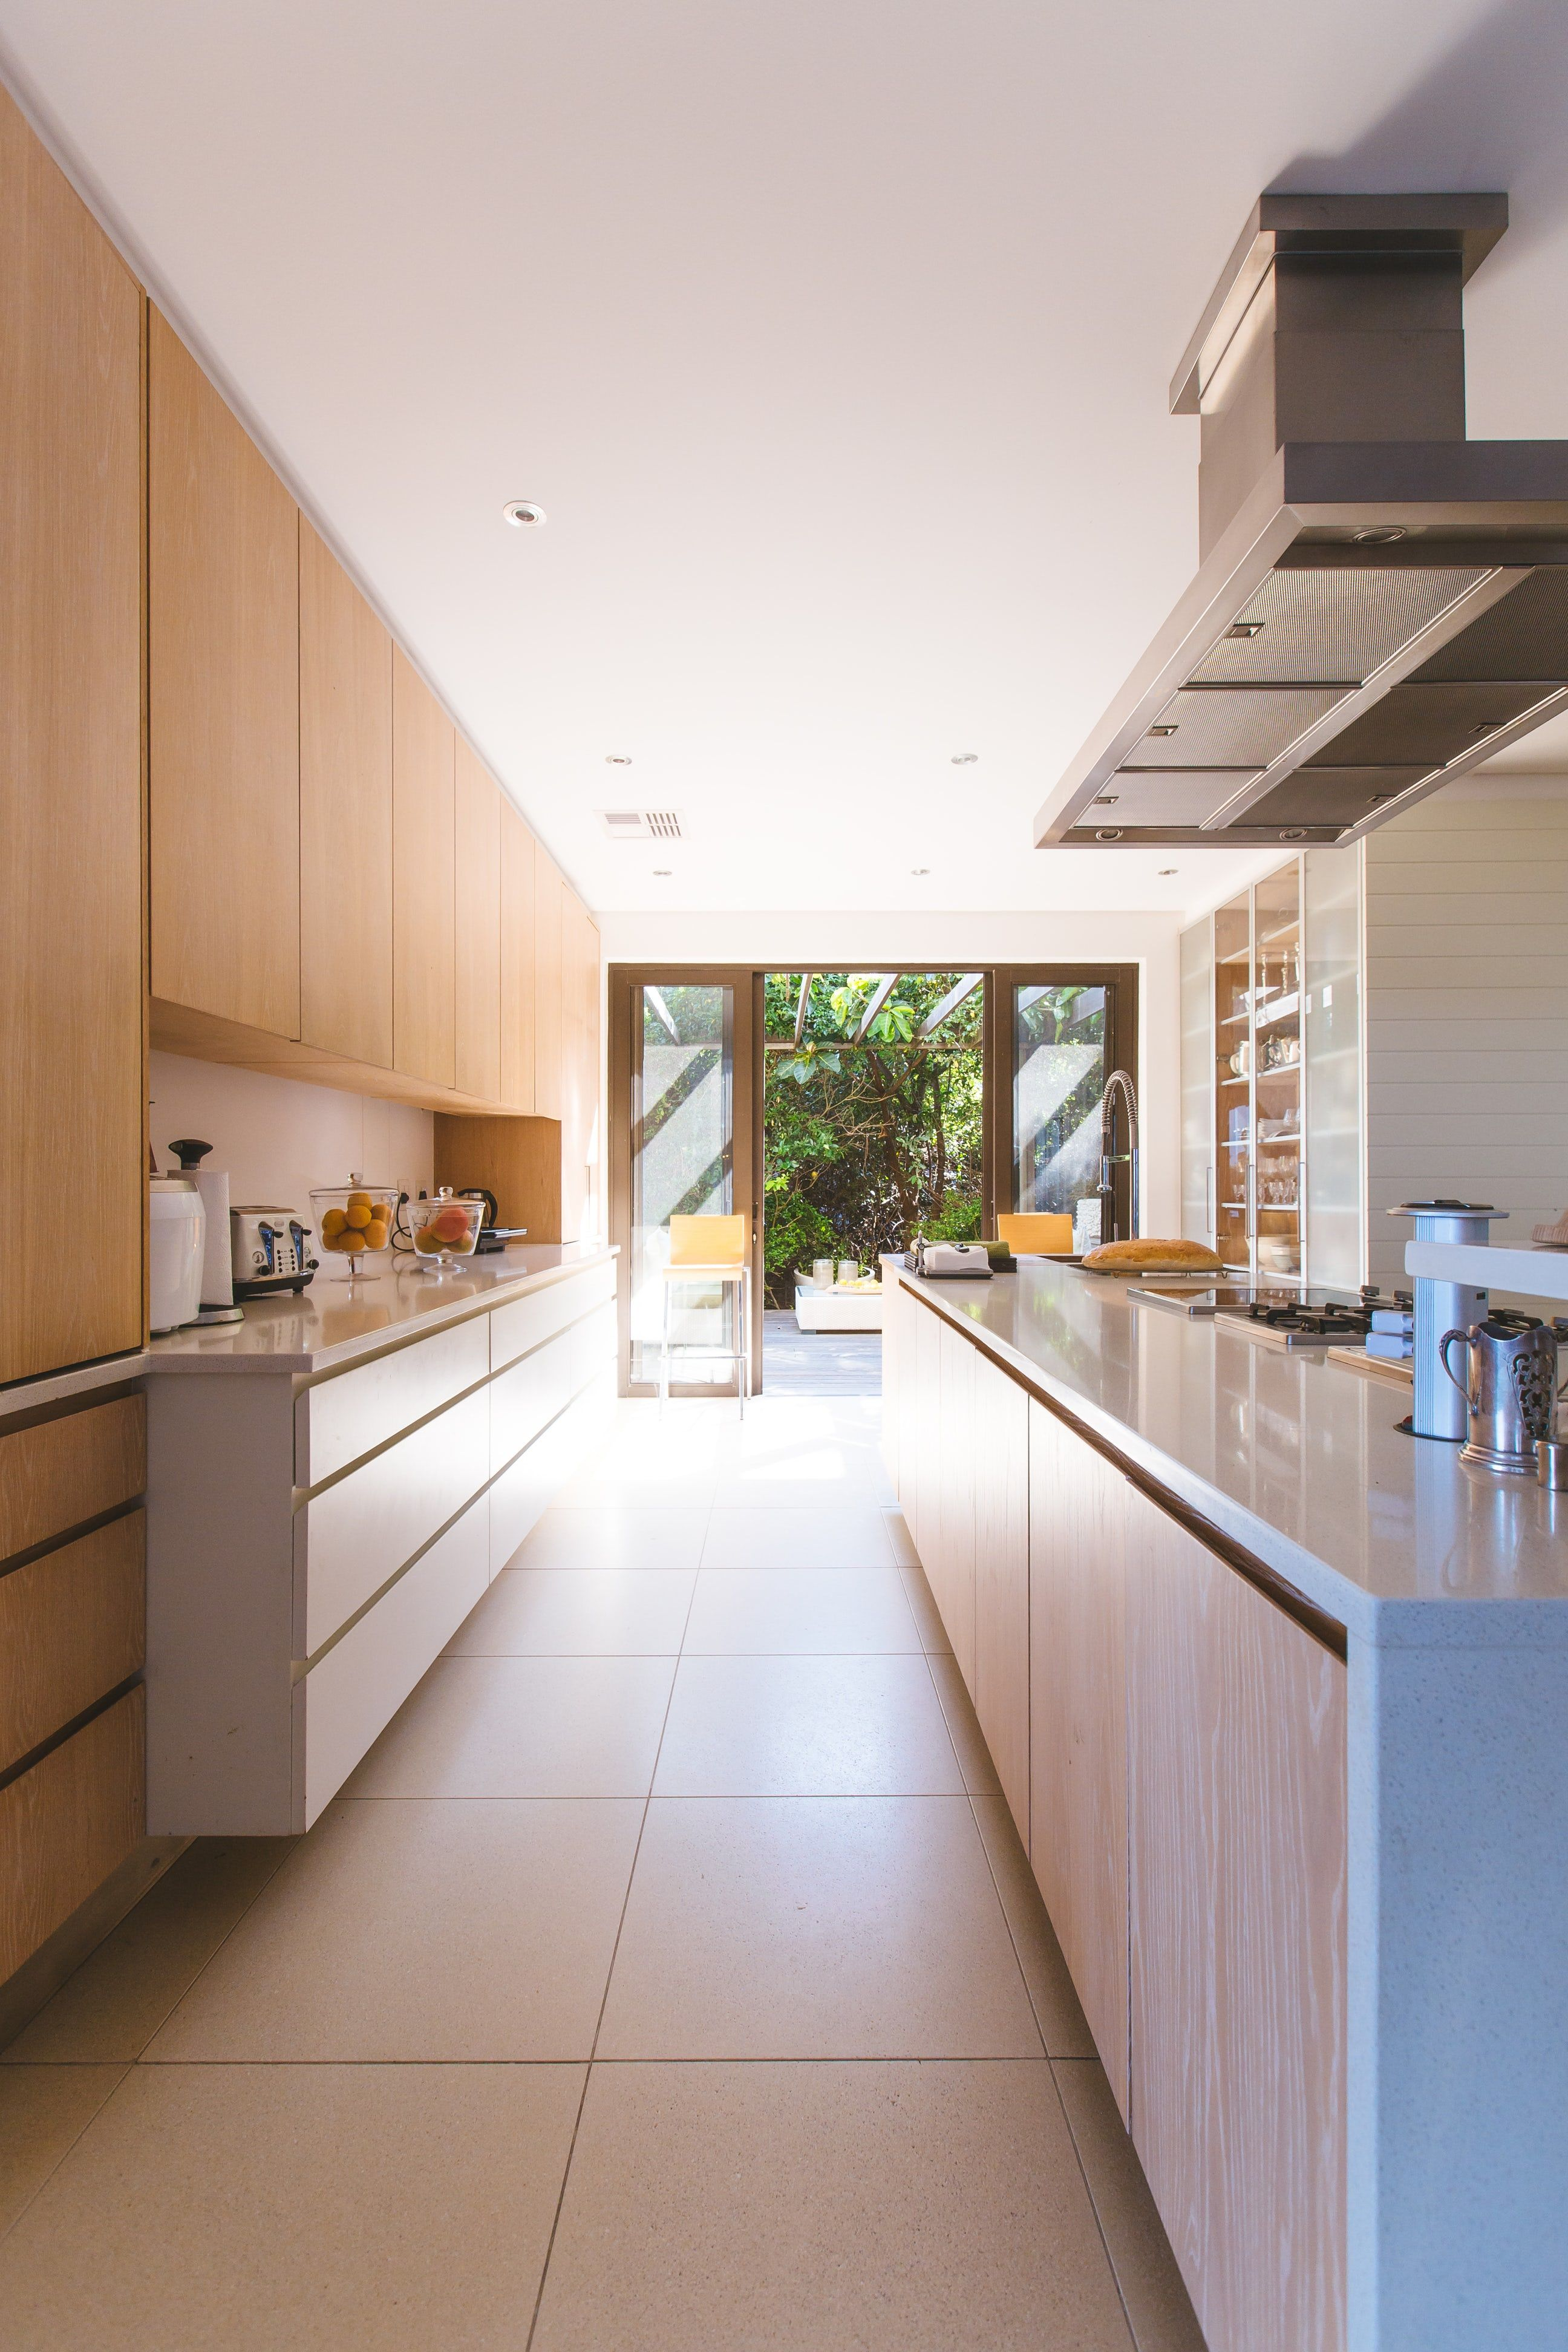 Clean Modern Kitchen With Window Looking Out On Trees And Sunlight Japanese Home Design Timber Kitchen Contemporary Kitchen